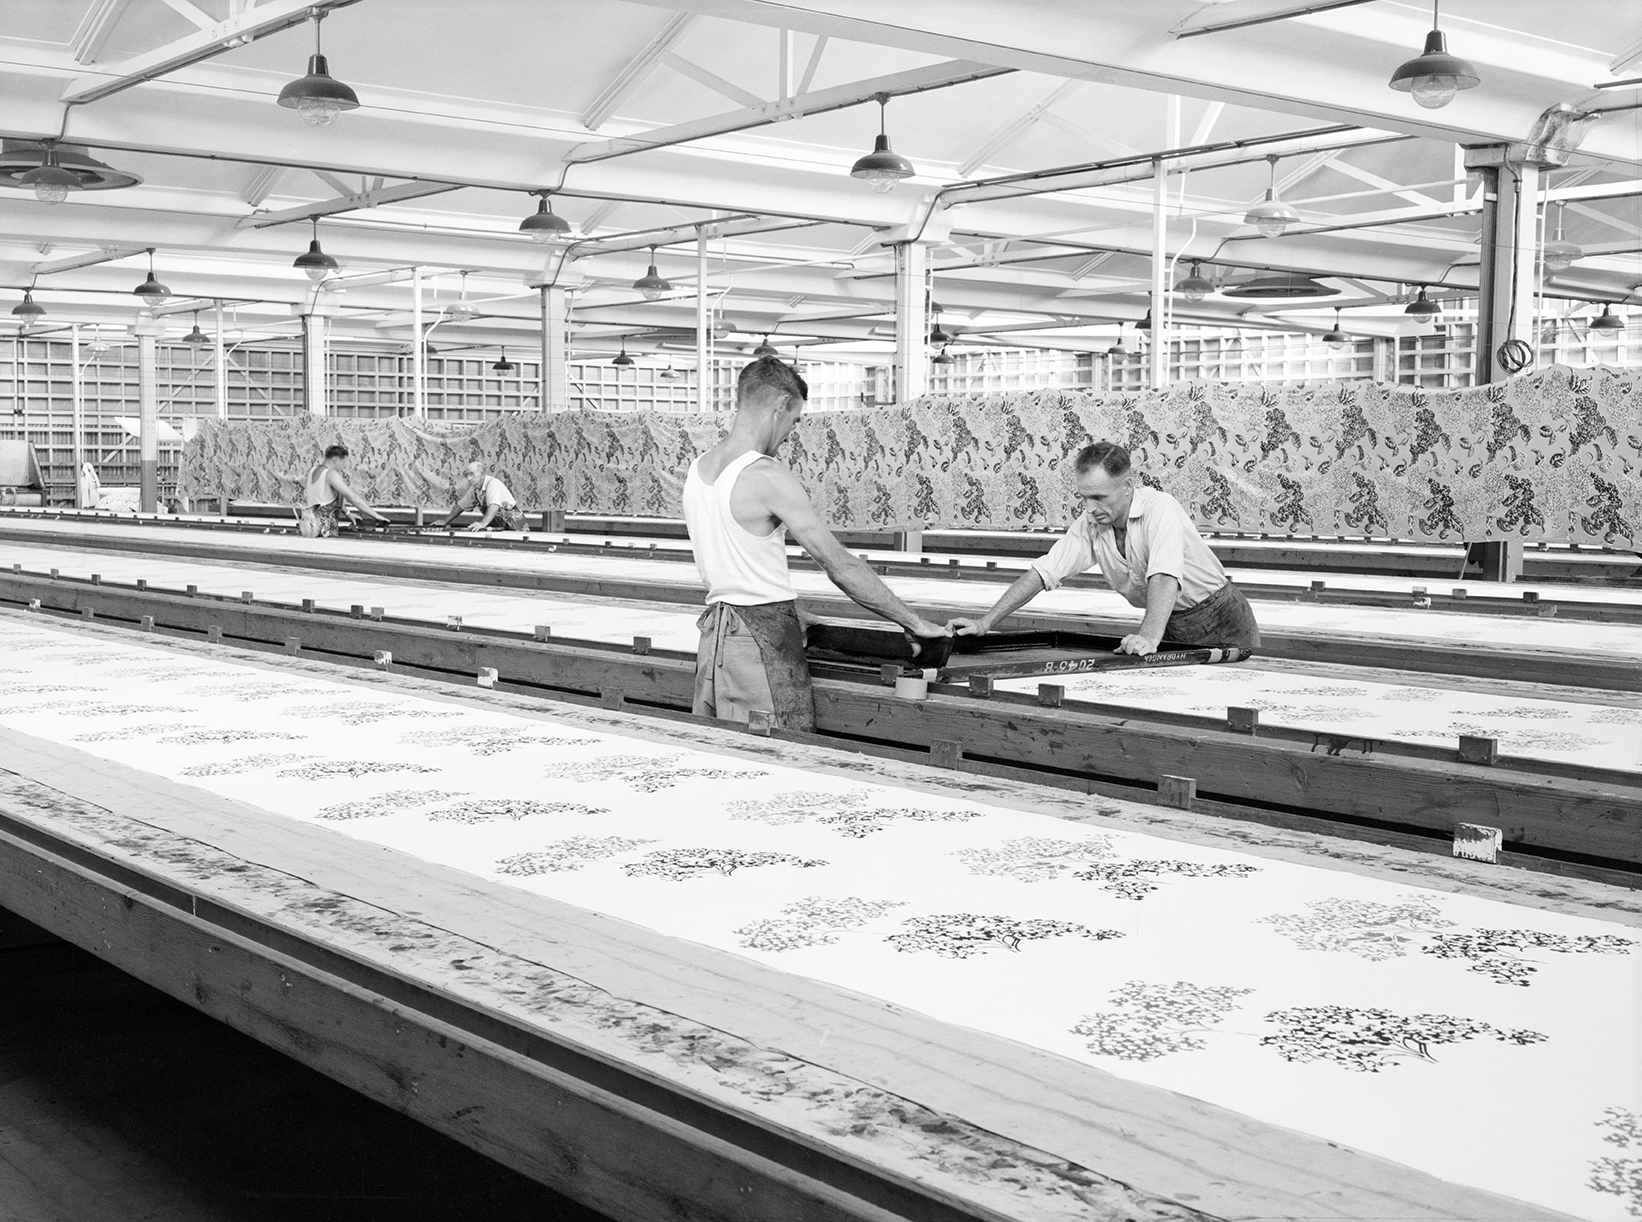 Printing fabric at the factory of Impression Textiles Ltd, Penrith by Max Dupain, 1948